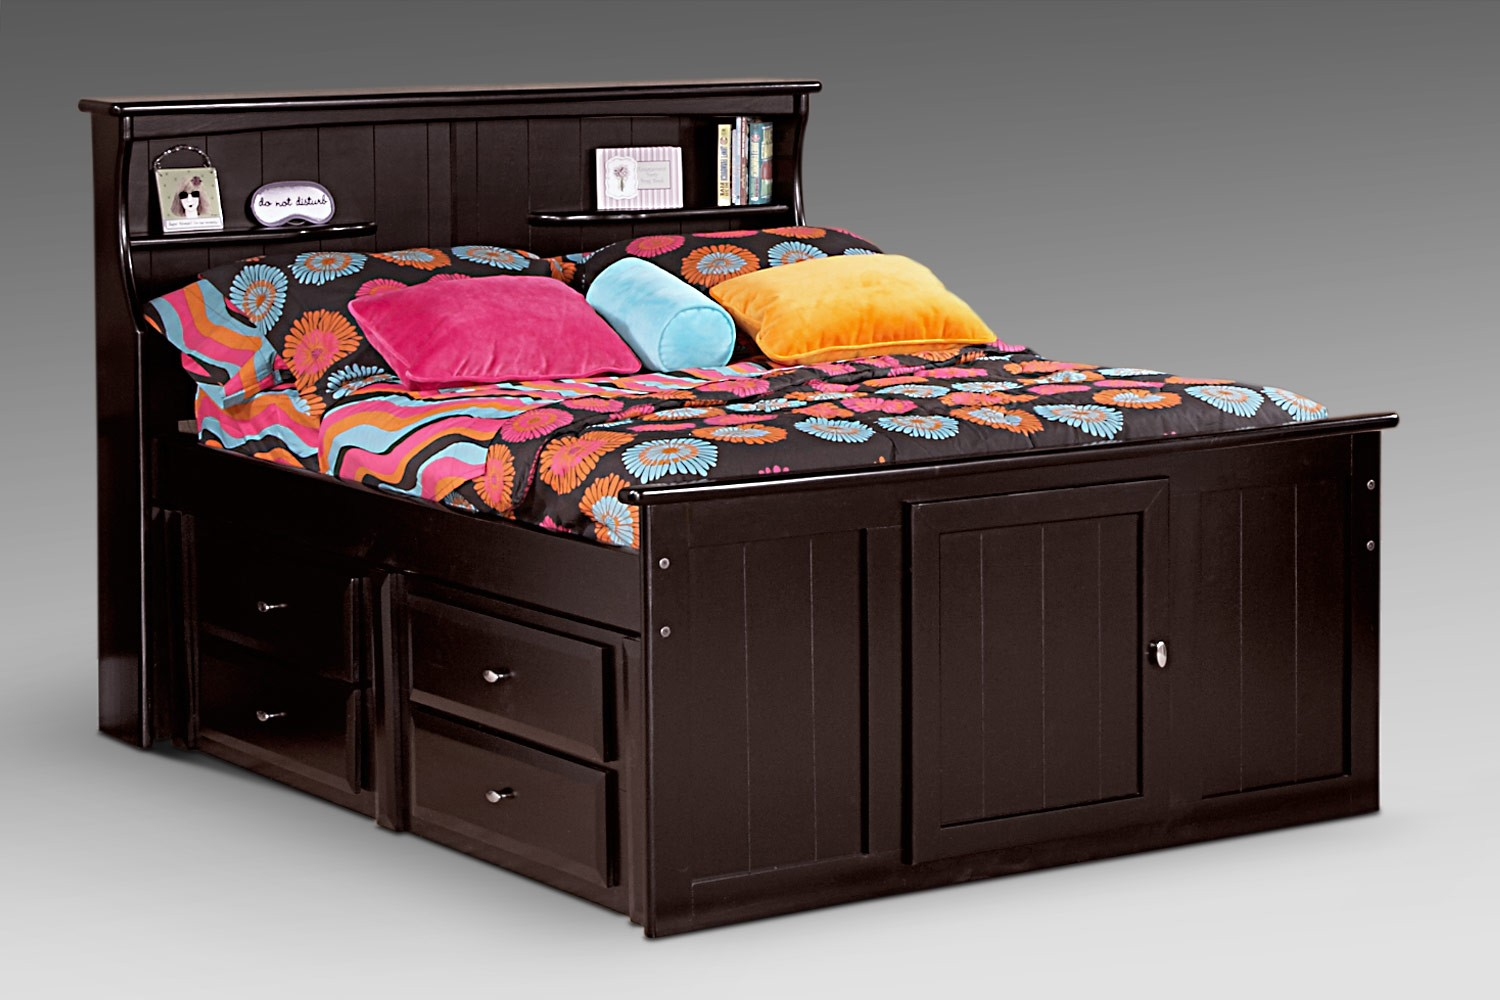 full bookcase storage bed types of furniture. Black Bedroom Furniture Sets. Home Design Ideas